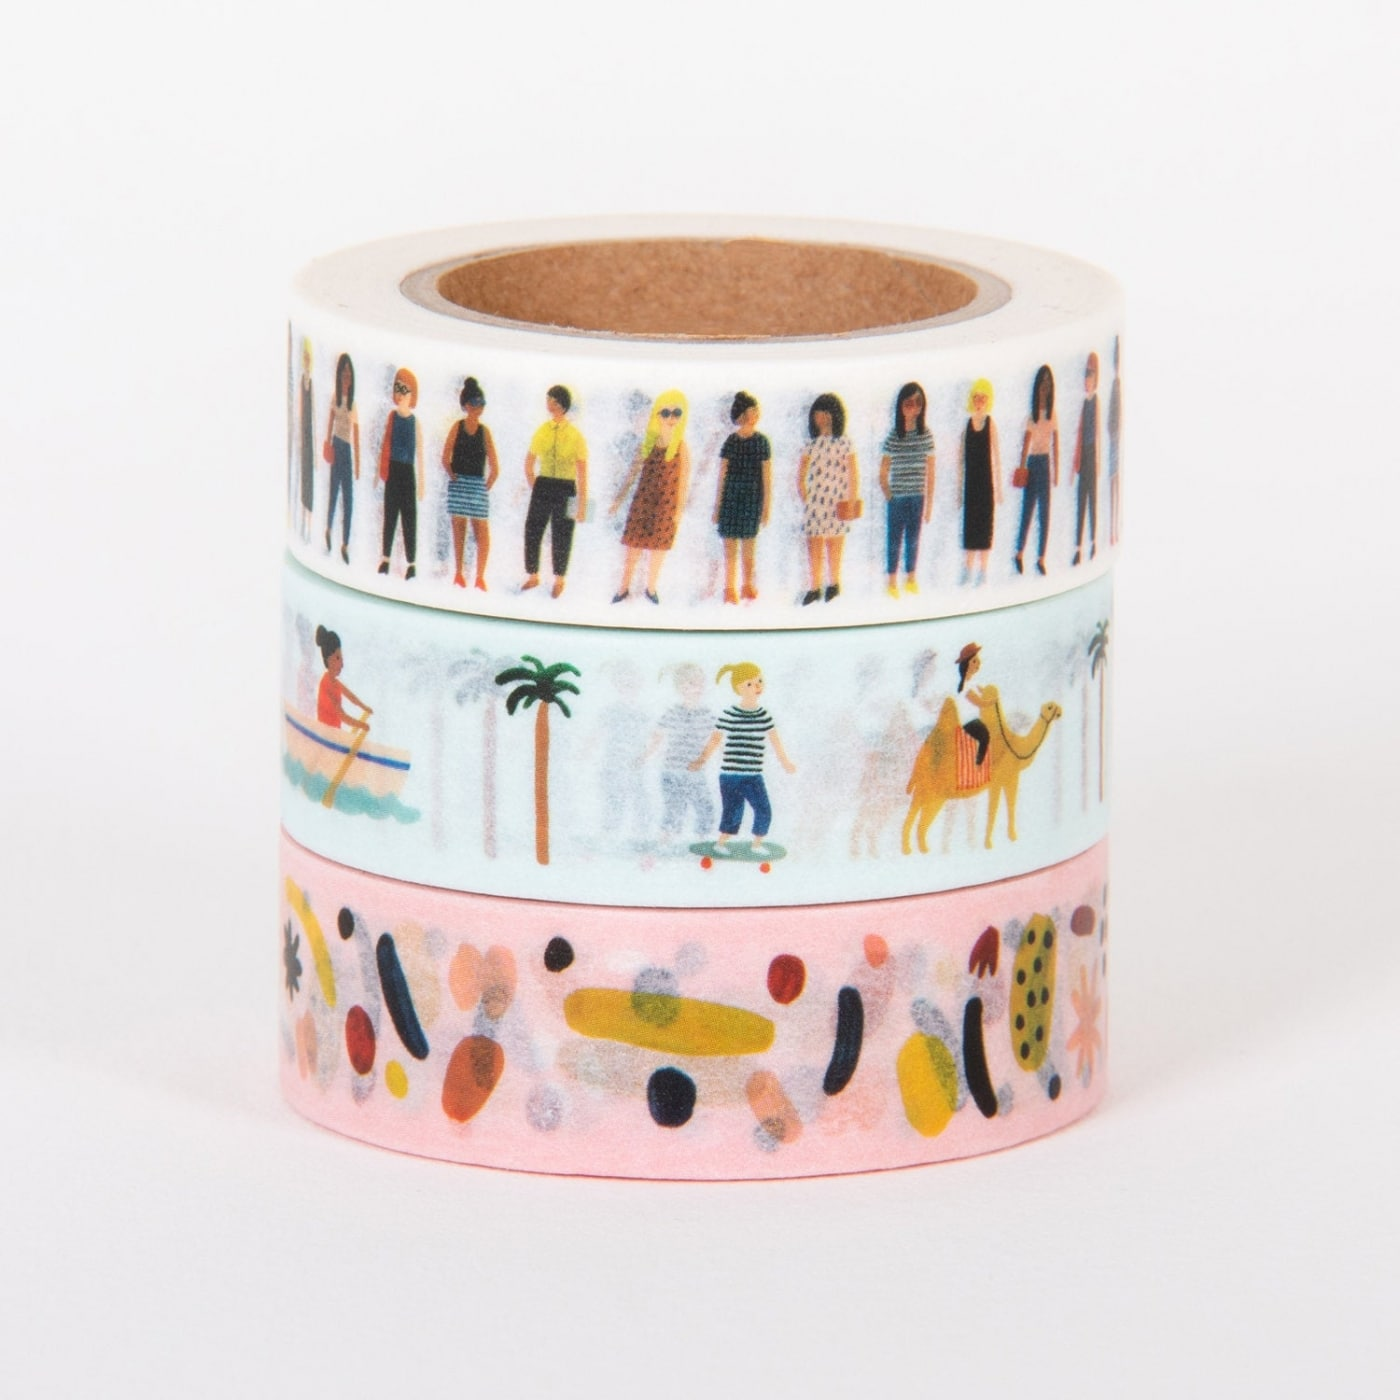 Set de cinta washi